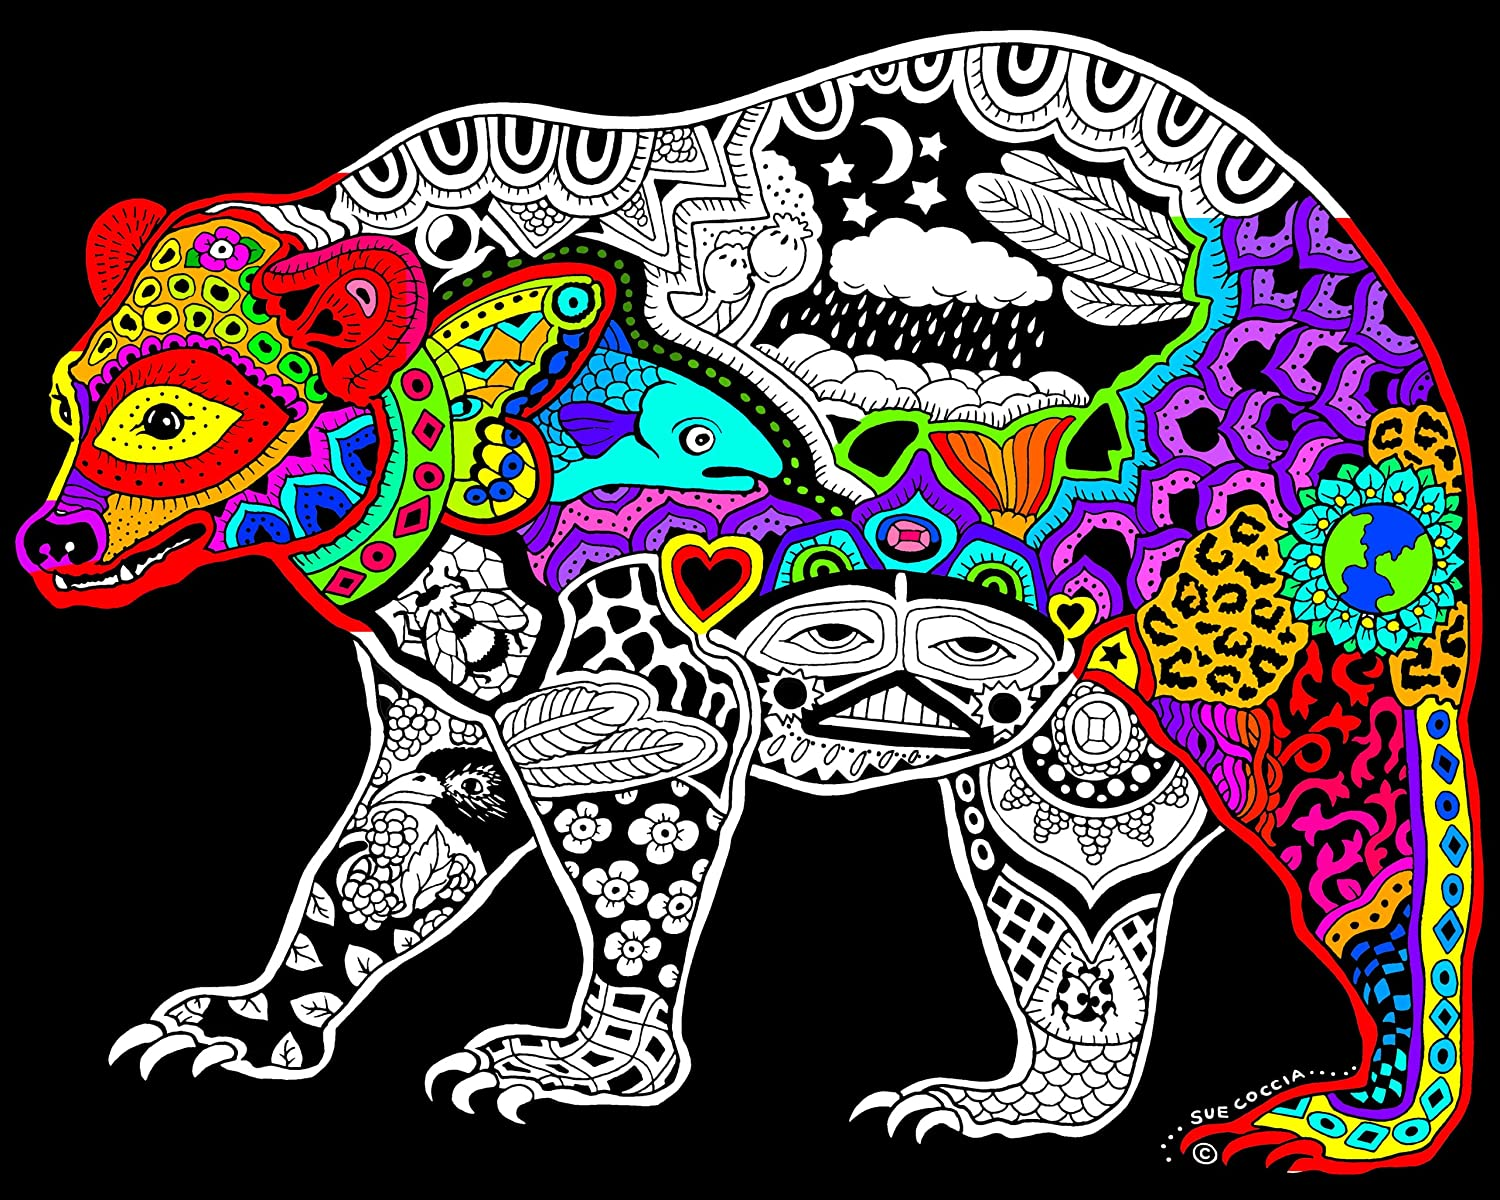 Amazon.com: Bear - 16x20 Fuzzy Velvet Coloring Poster: Toys & Games